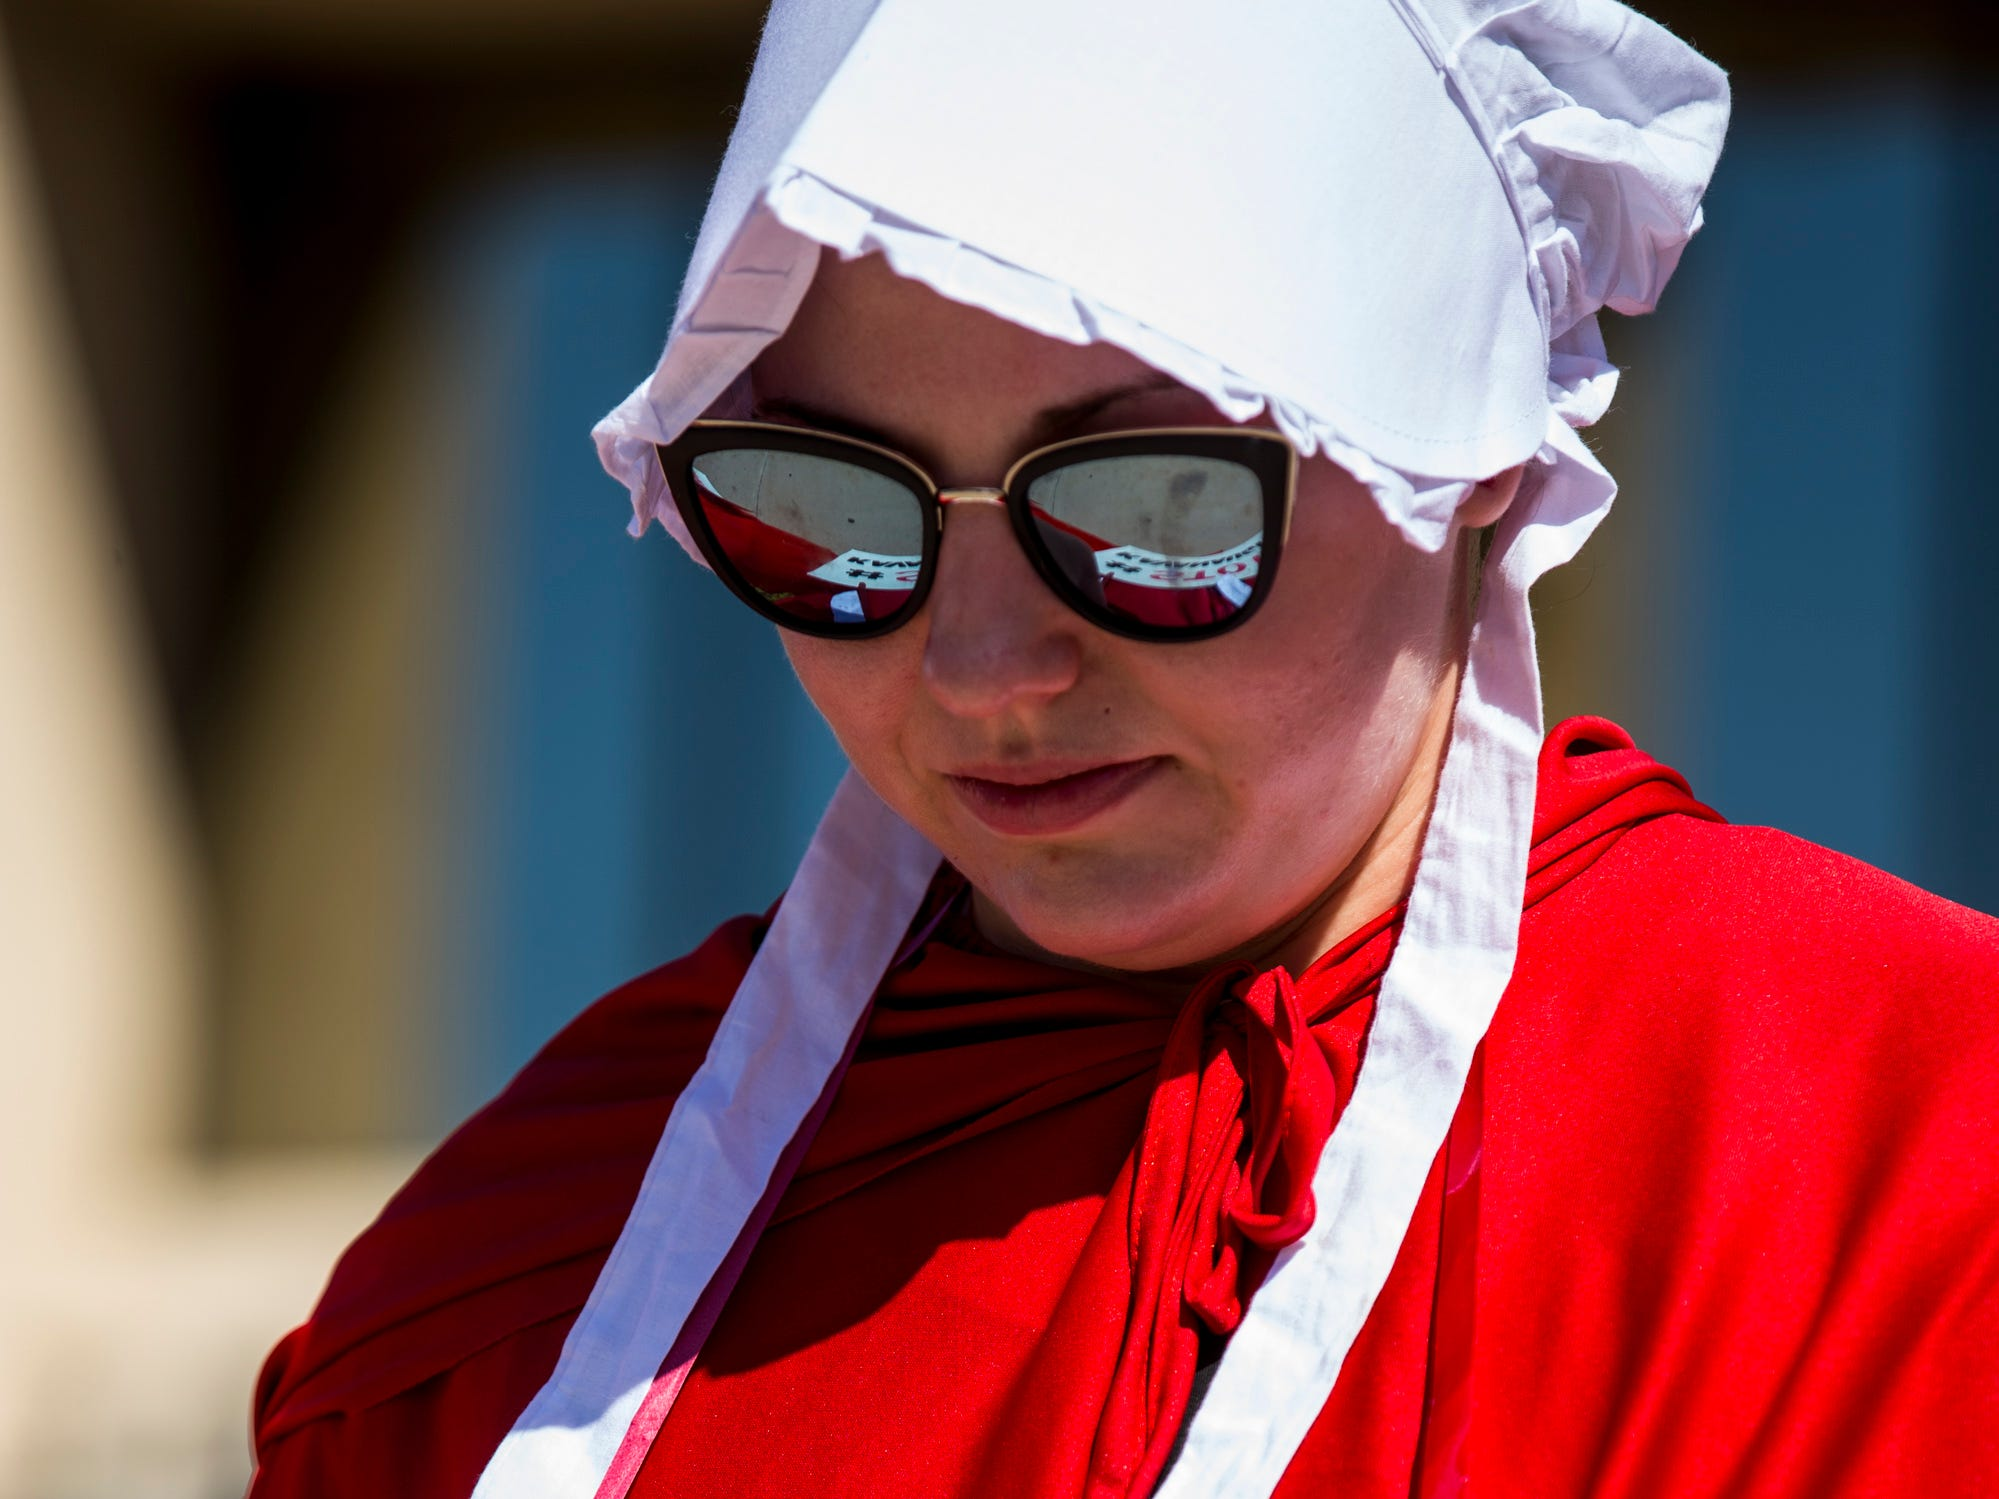 Kristin Clark, dressed as a handmaid, protests Supreme Court nominee Brett Kavanaugh outside Senator Jeff Flake's office on Sept. 27, 2018, in Phoenix.